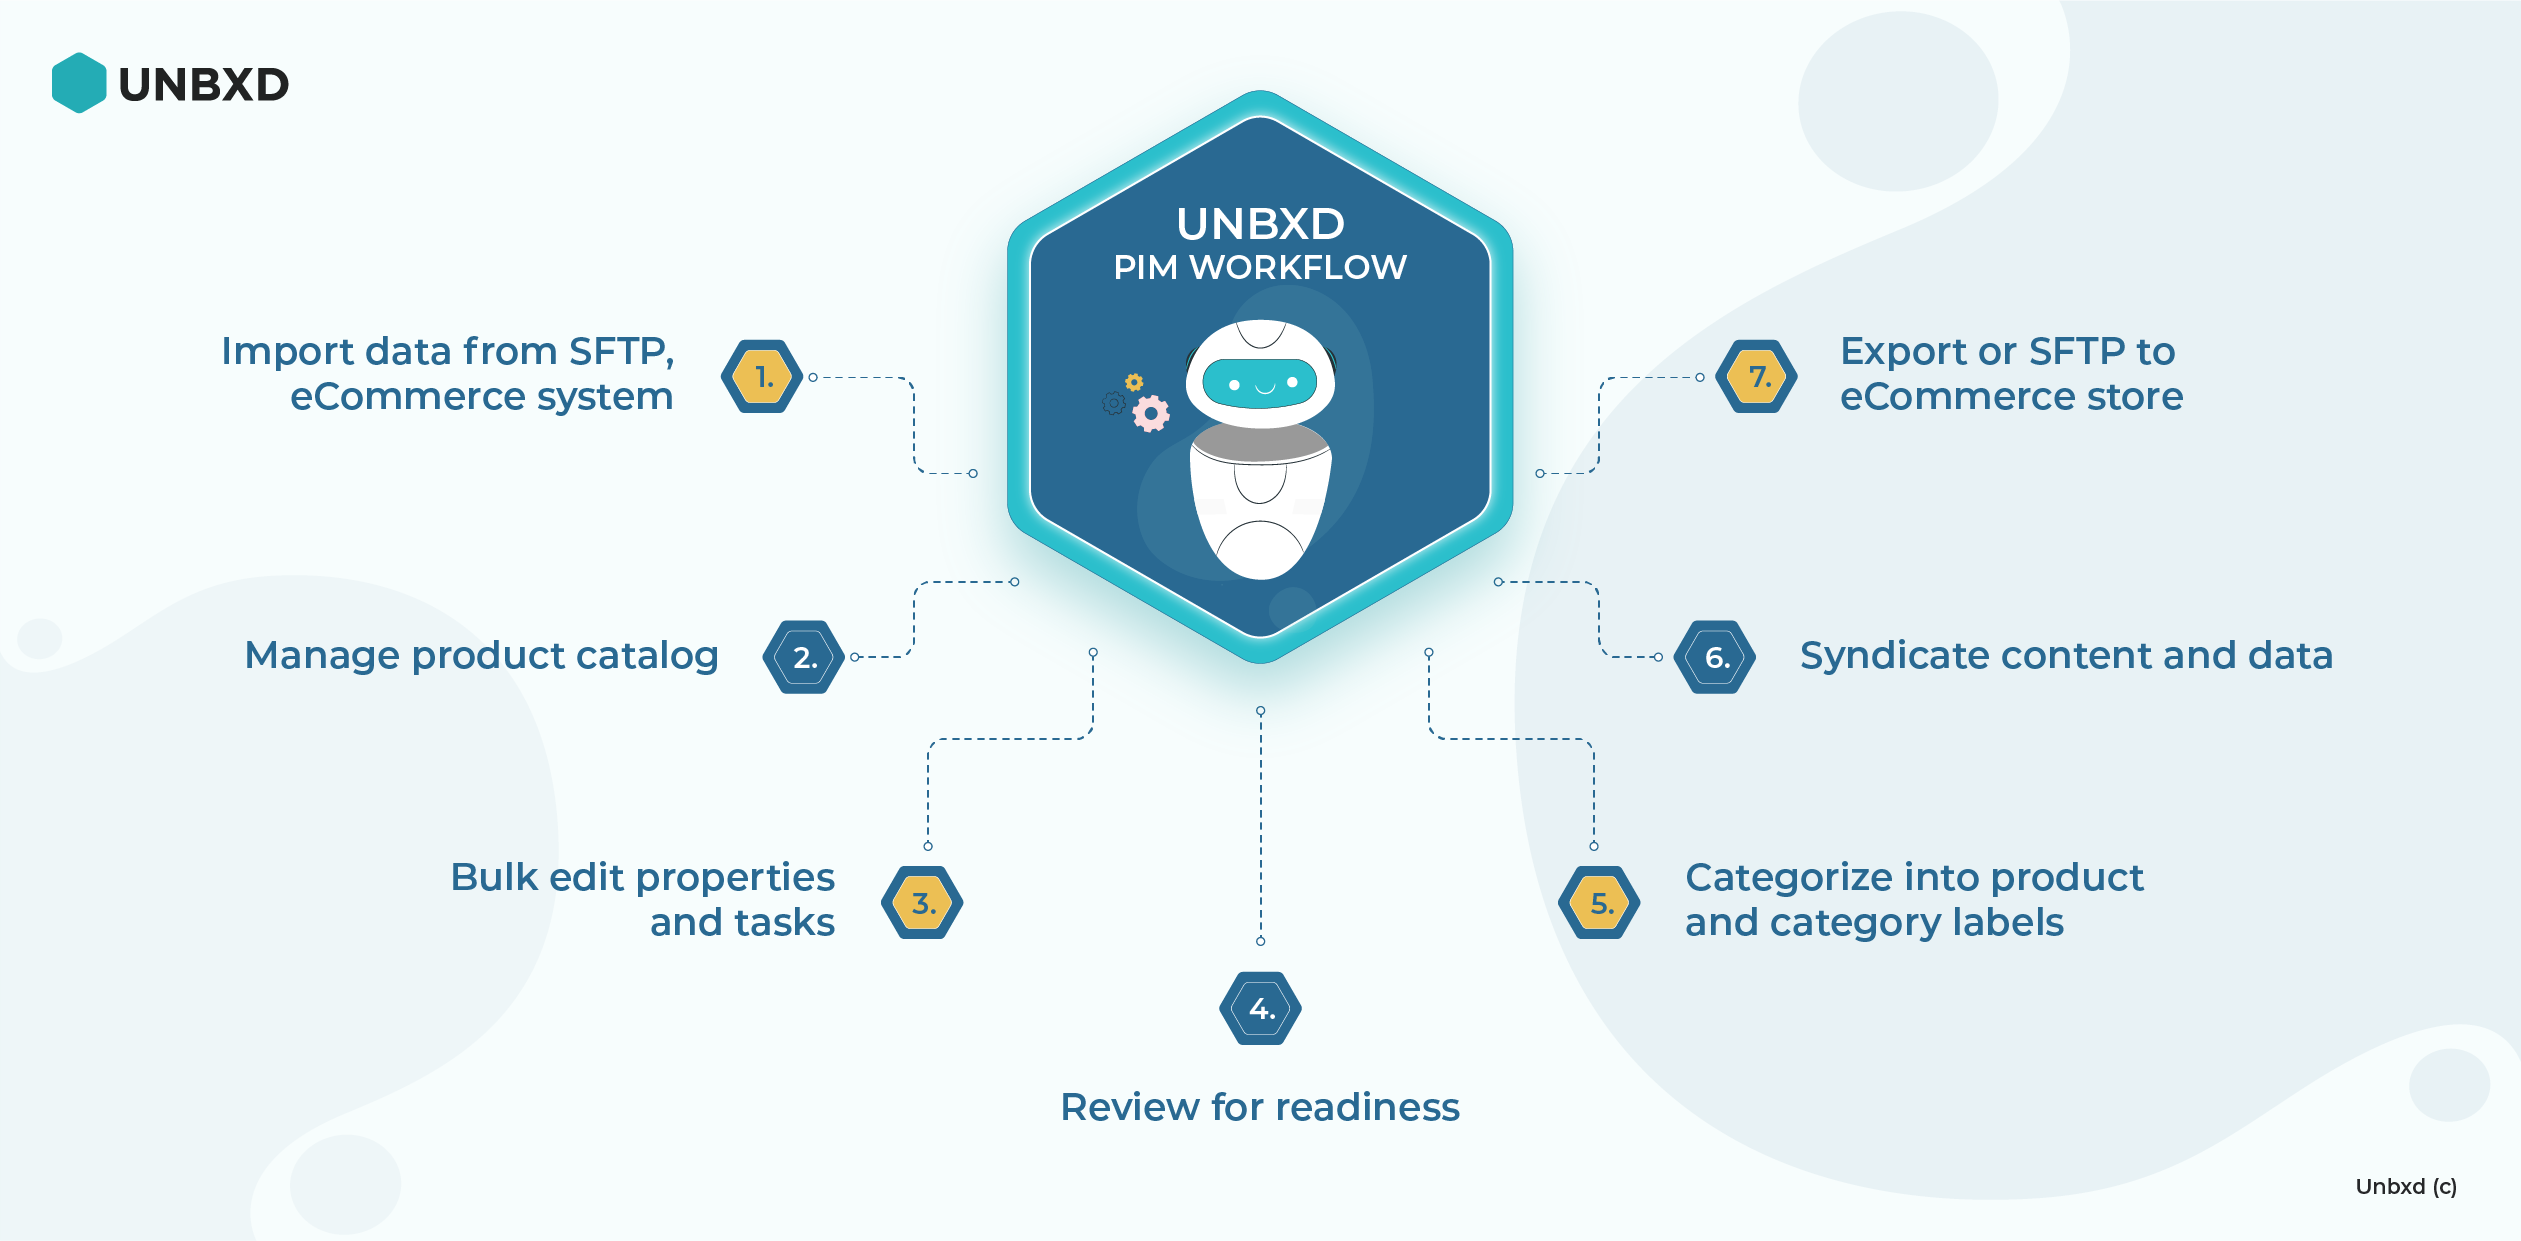 Automating manual daily tasks with Unbxd PIM Workflows